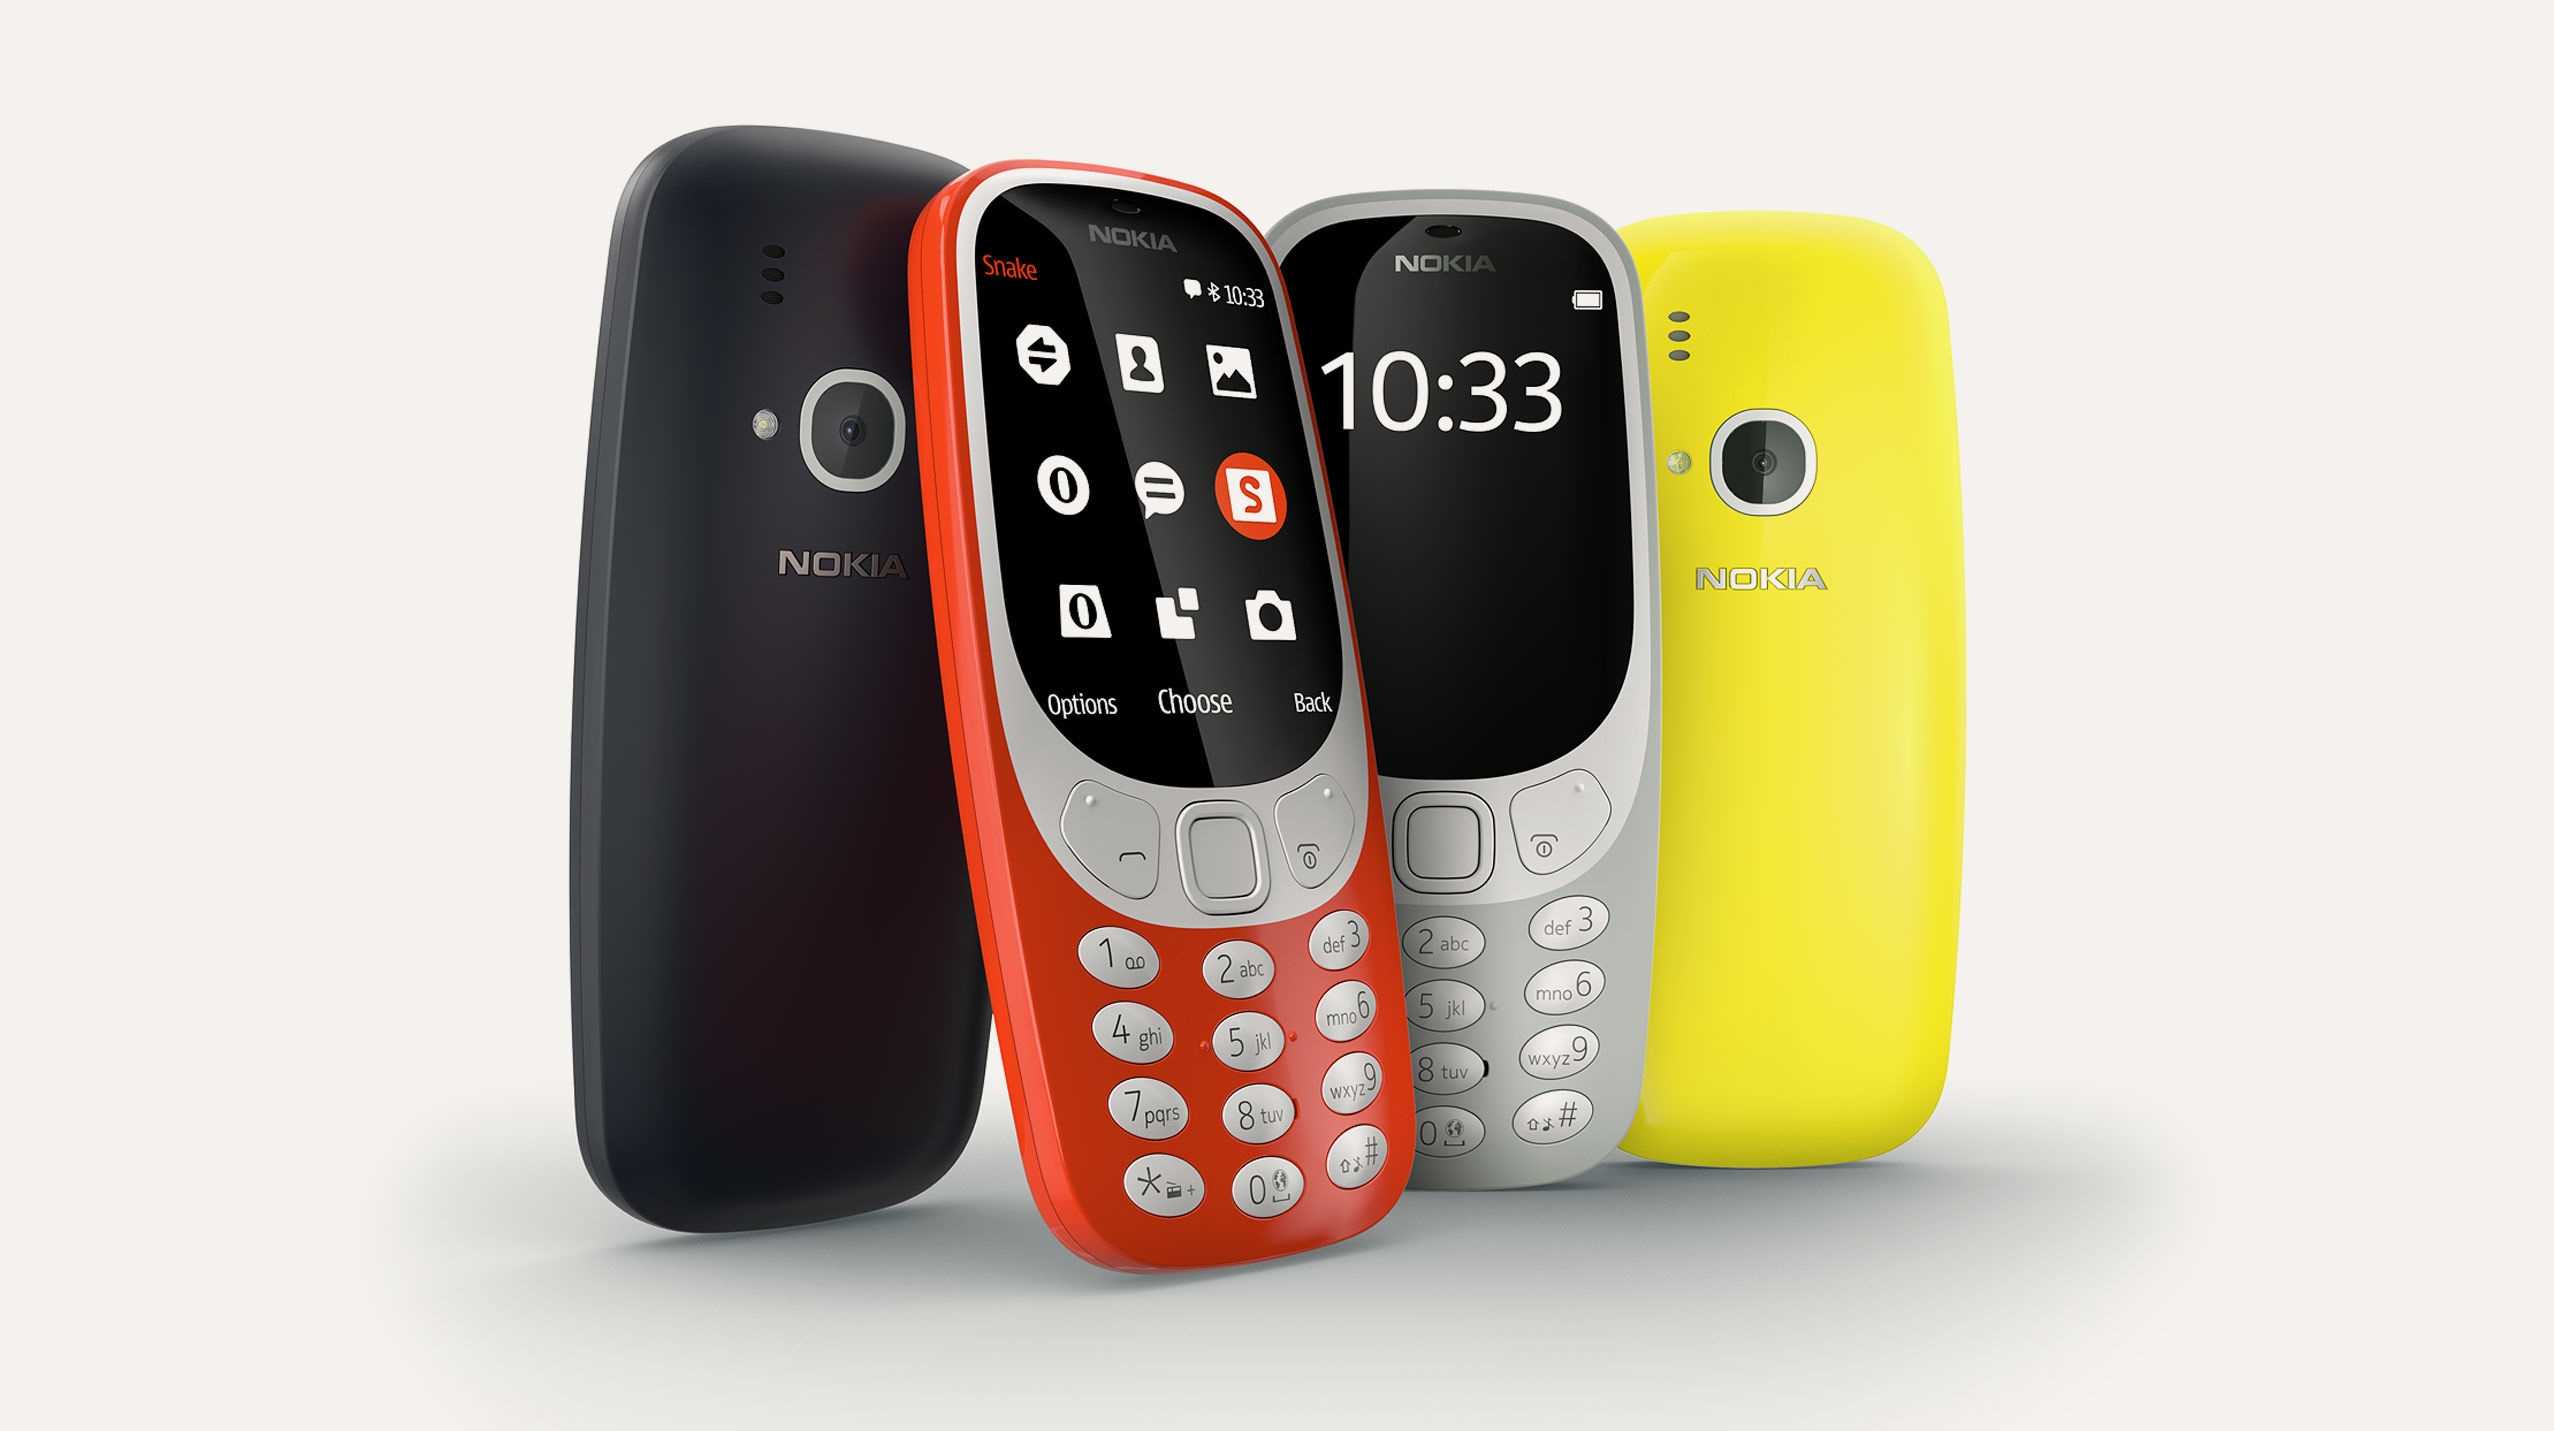 The revamped Nokia 3310 will go on sale on May 24